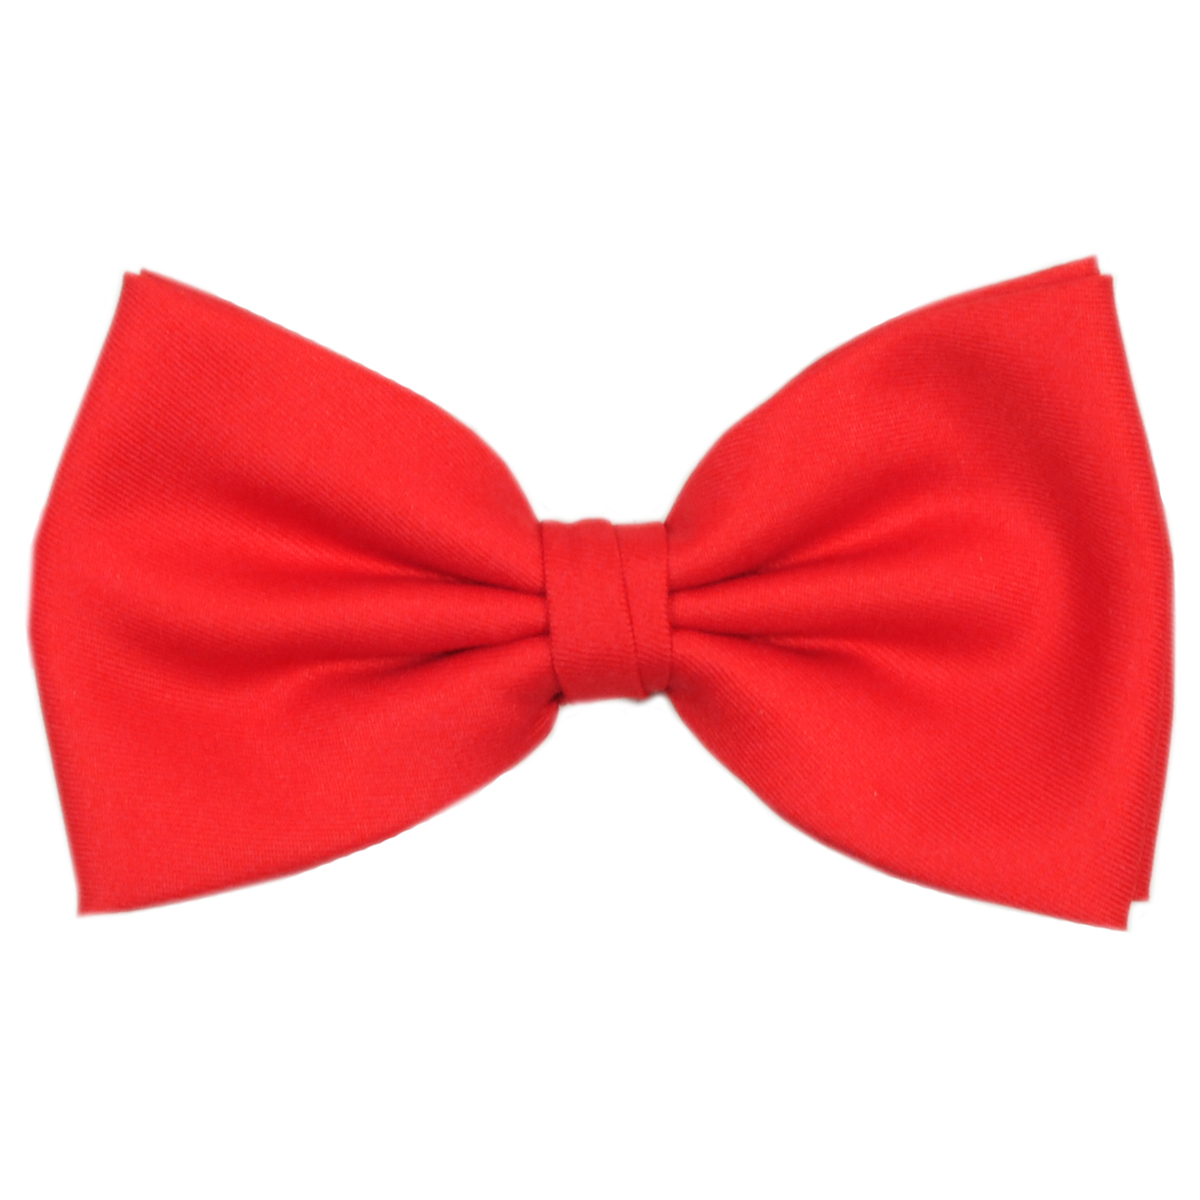 how to clip a bow tie photo - 1